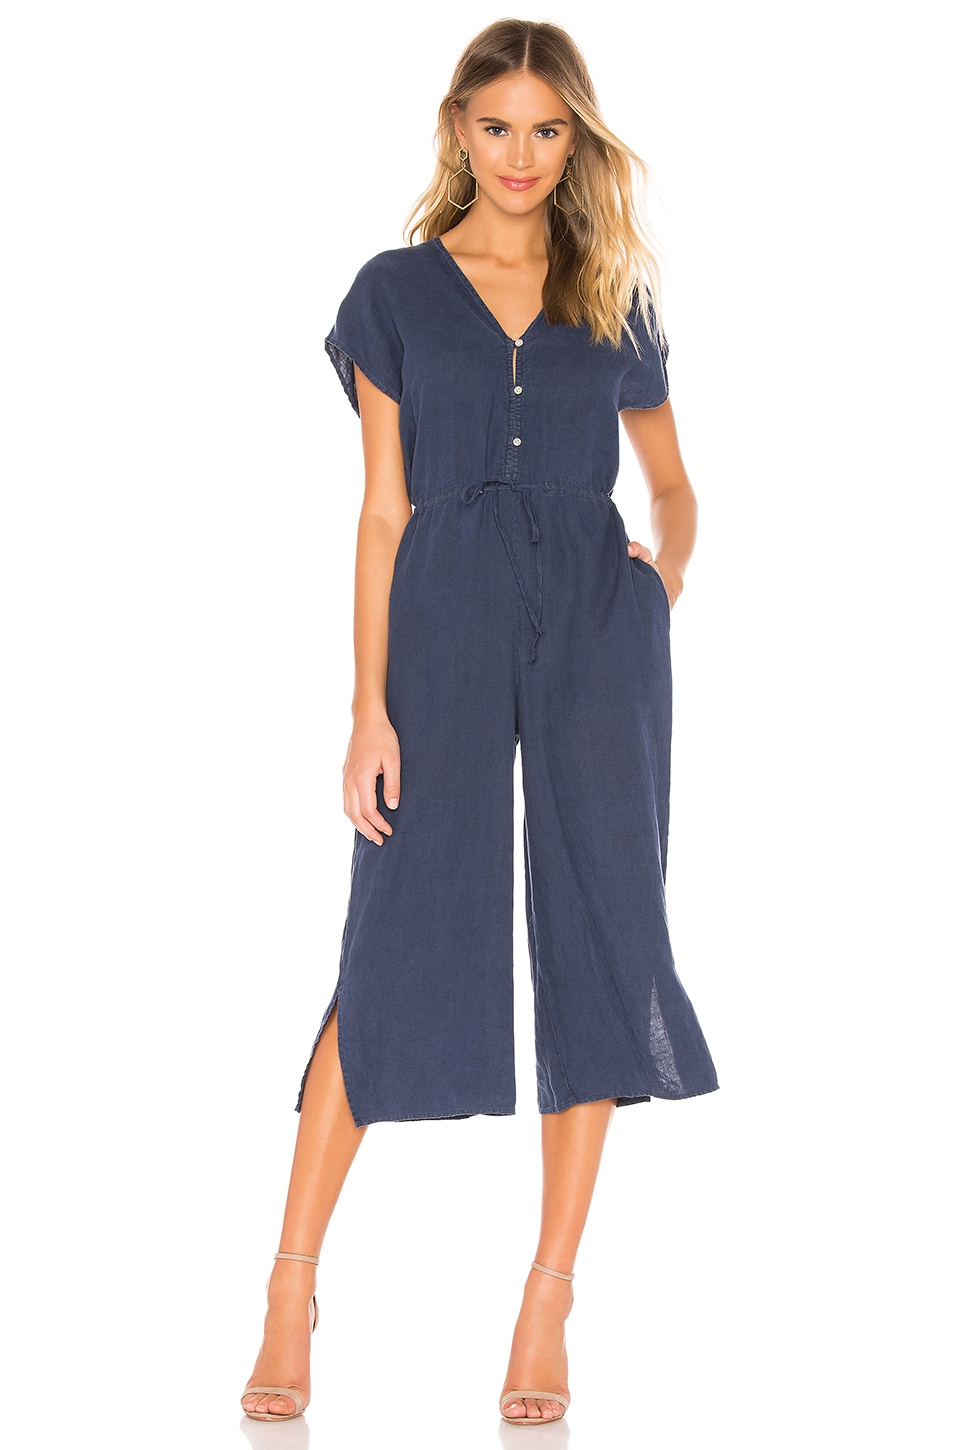 Bella Dahl Capsleeve V Neck Jumpsuit in Navy Night